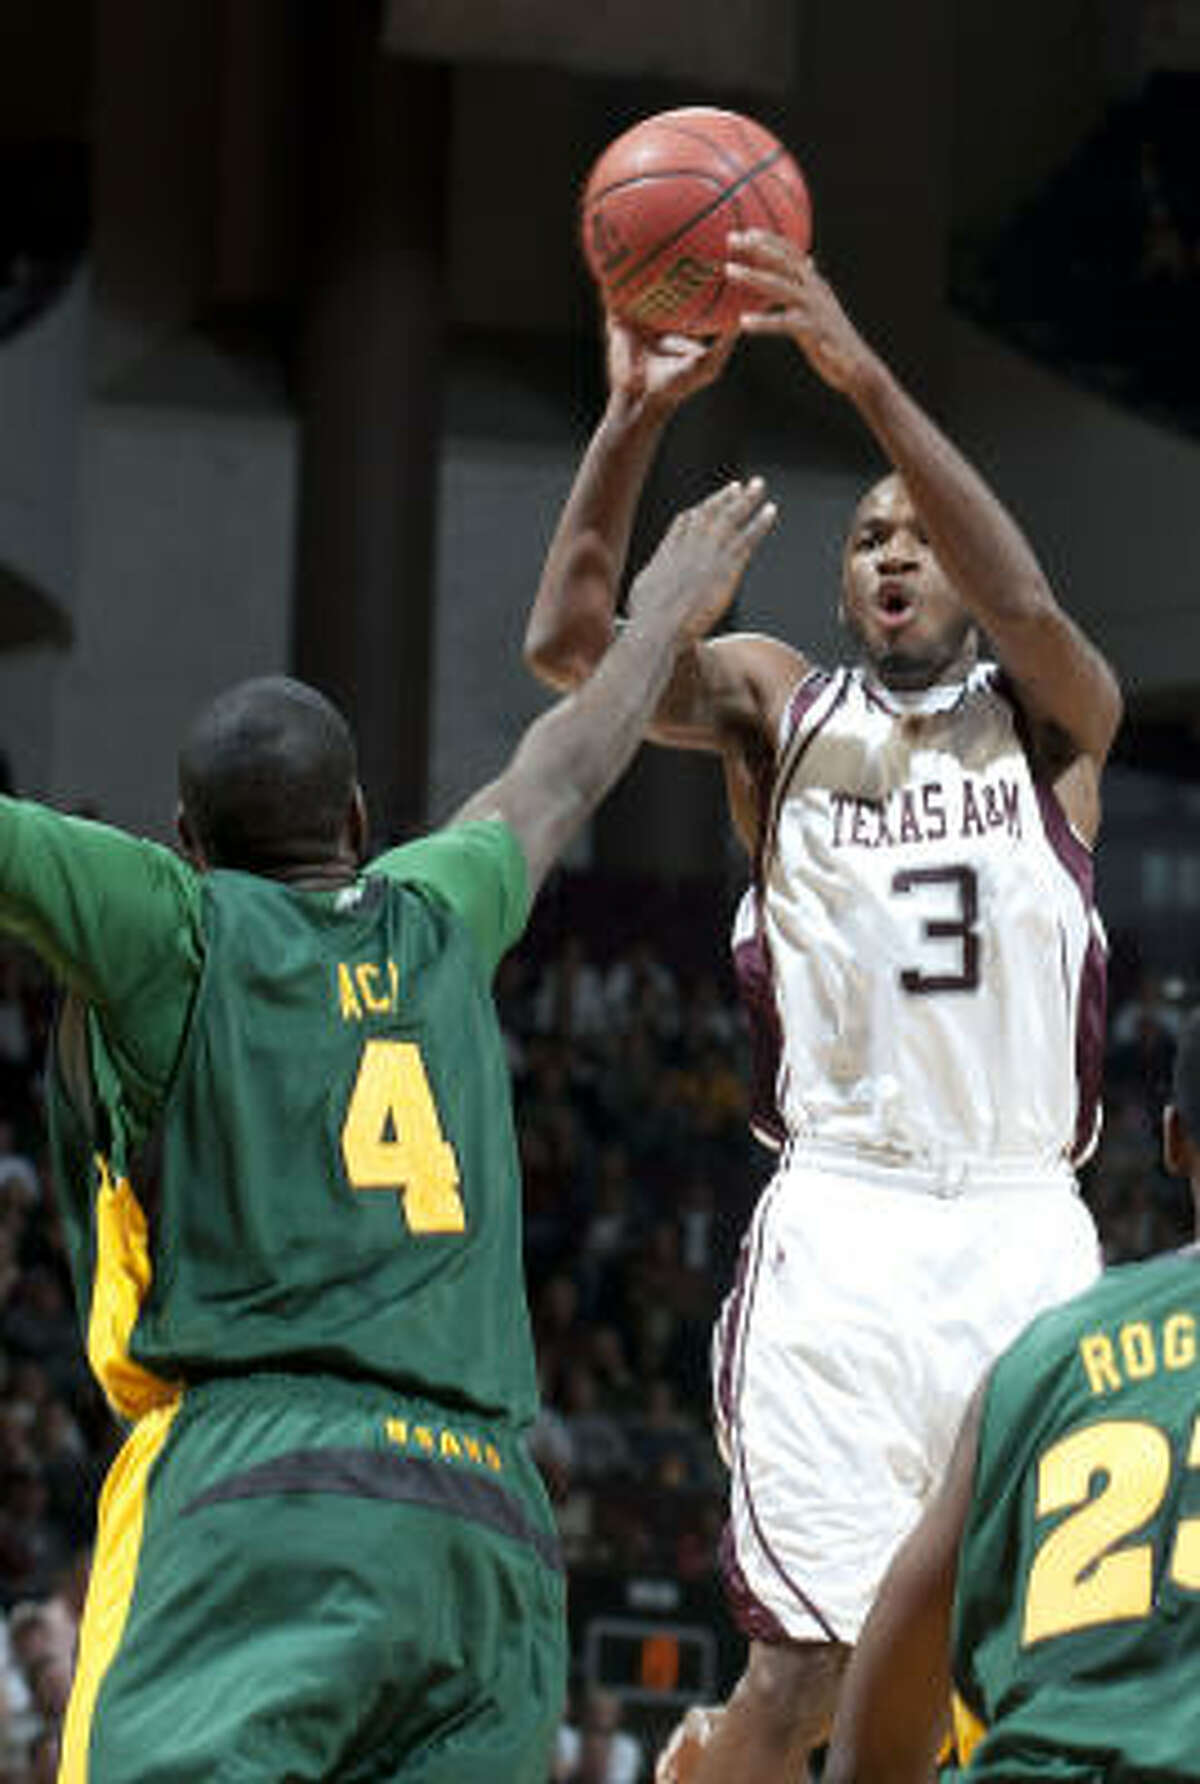 Texas A&M's Derrick Roland (3) goes up for a basket over Baylor's Quincy Acy (4) during the first half.